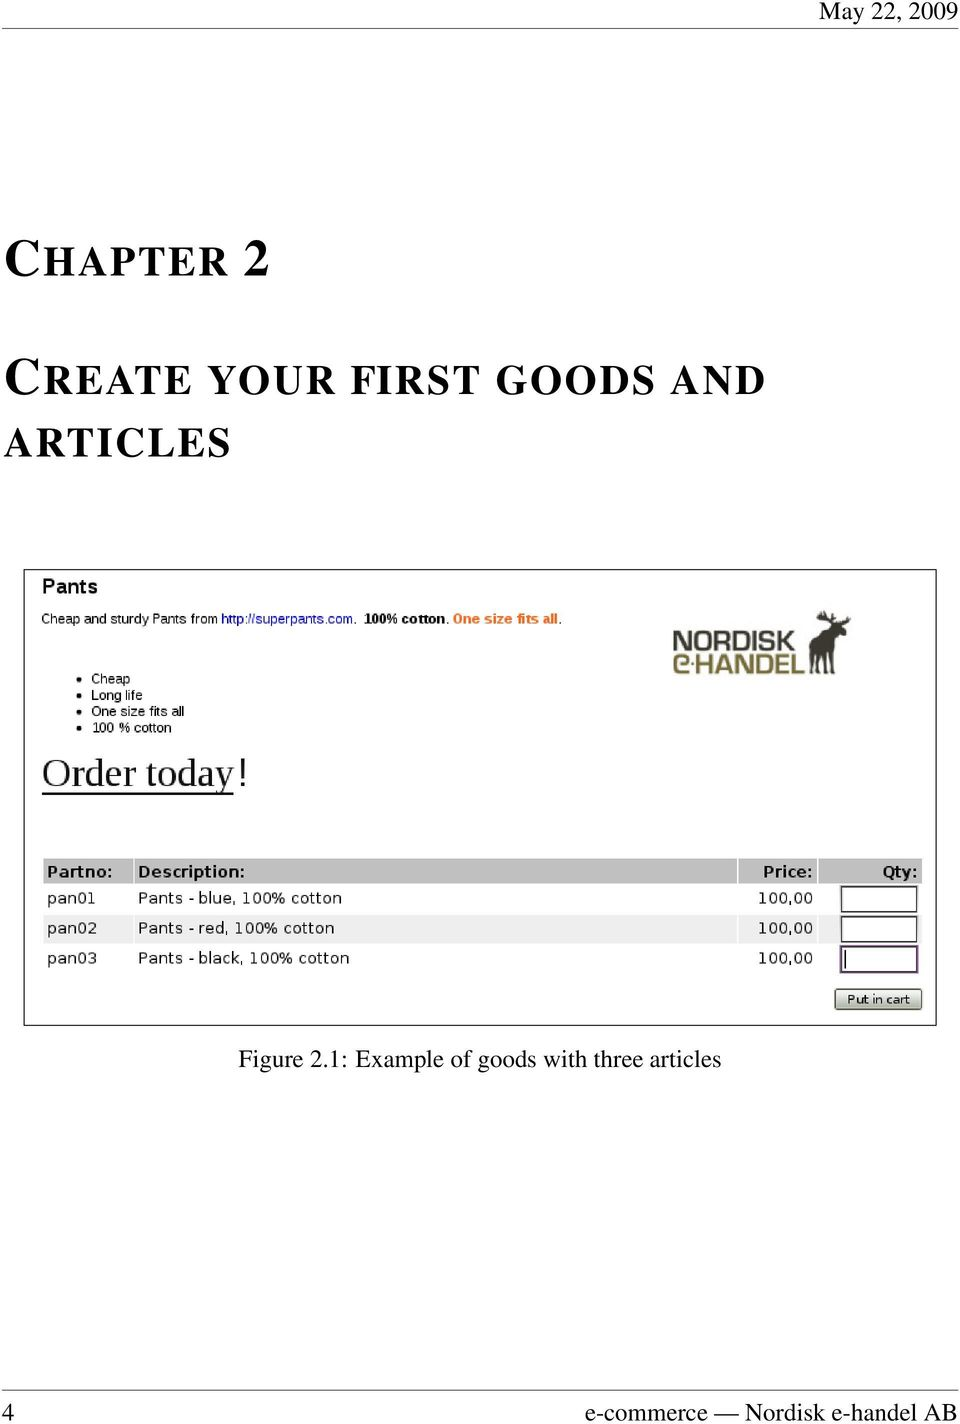 1: Example of goods with three